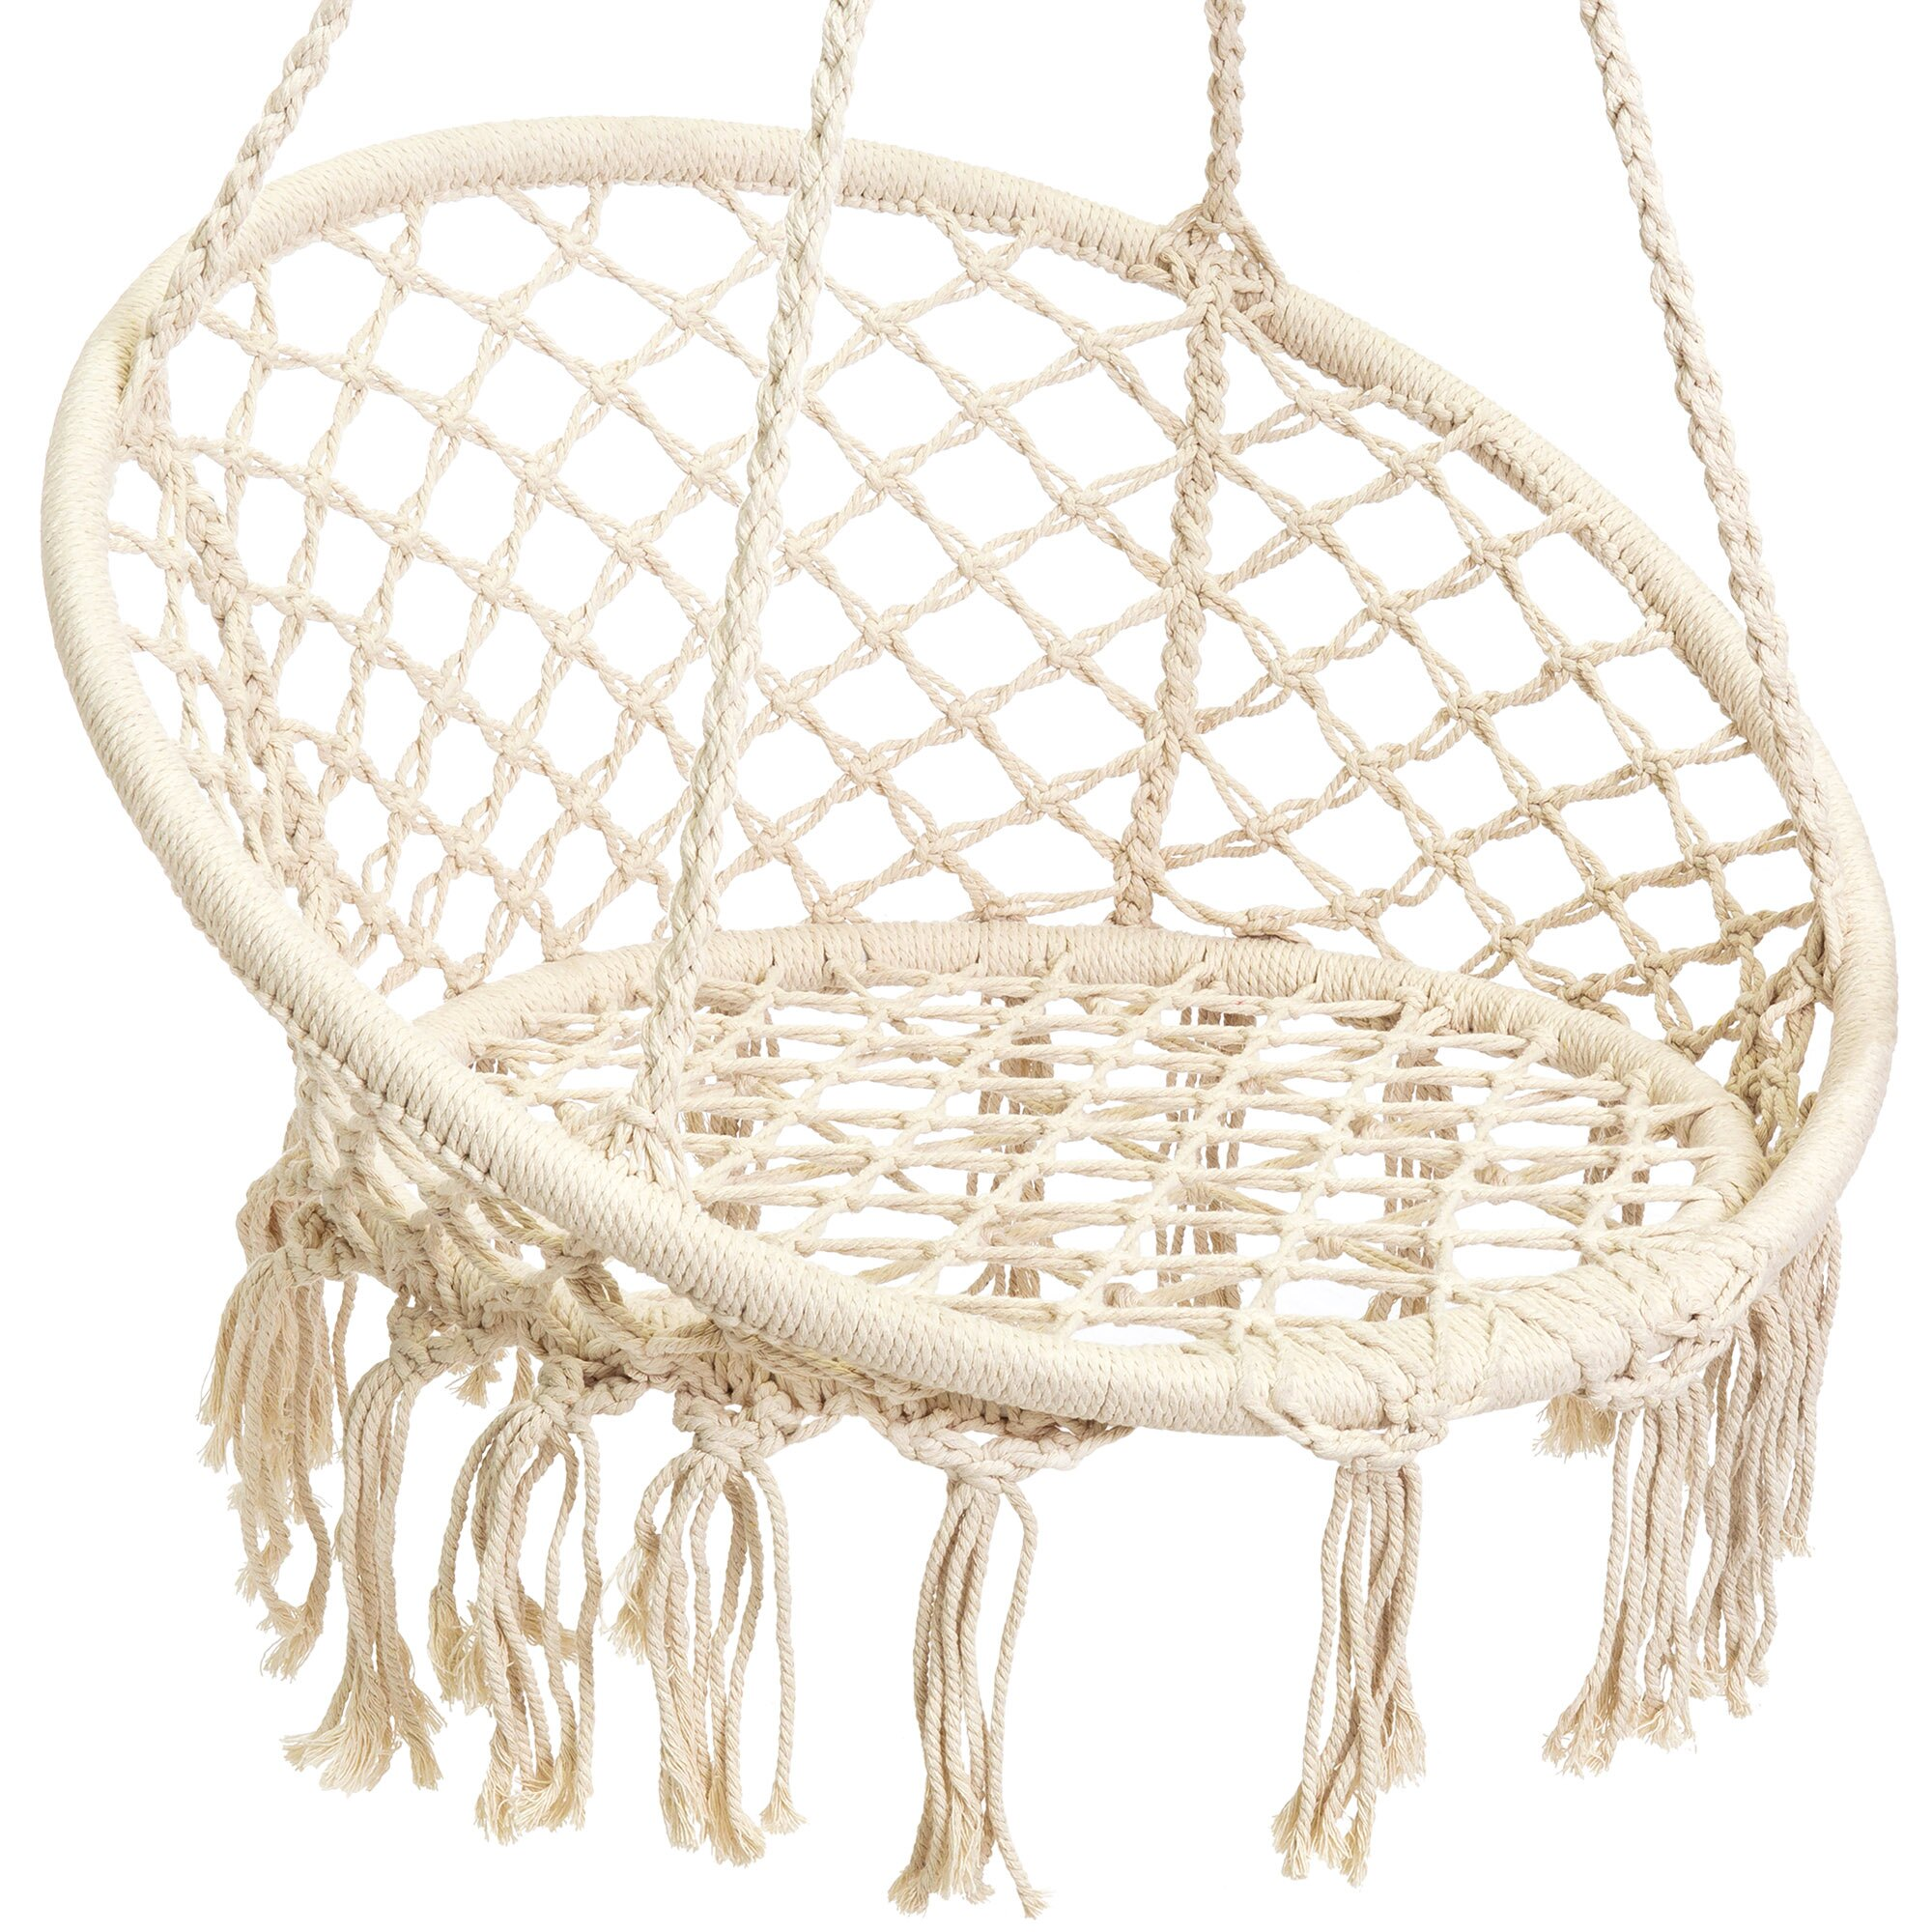 Best Choice Products Indoor/Outdoor Hanging Cotton Macrame Rope Hammock  Lounge Swing Chair W/